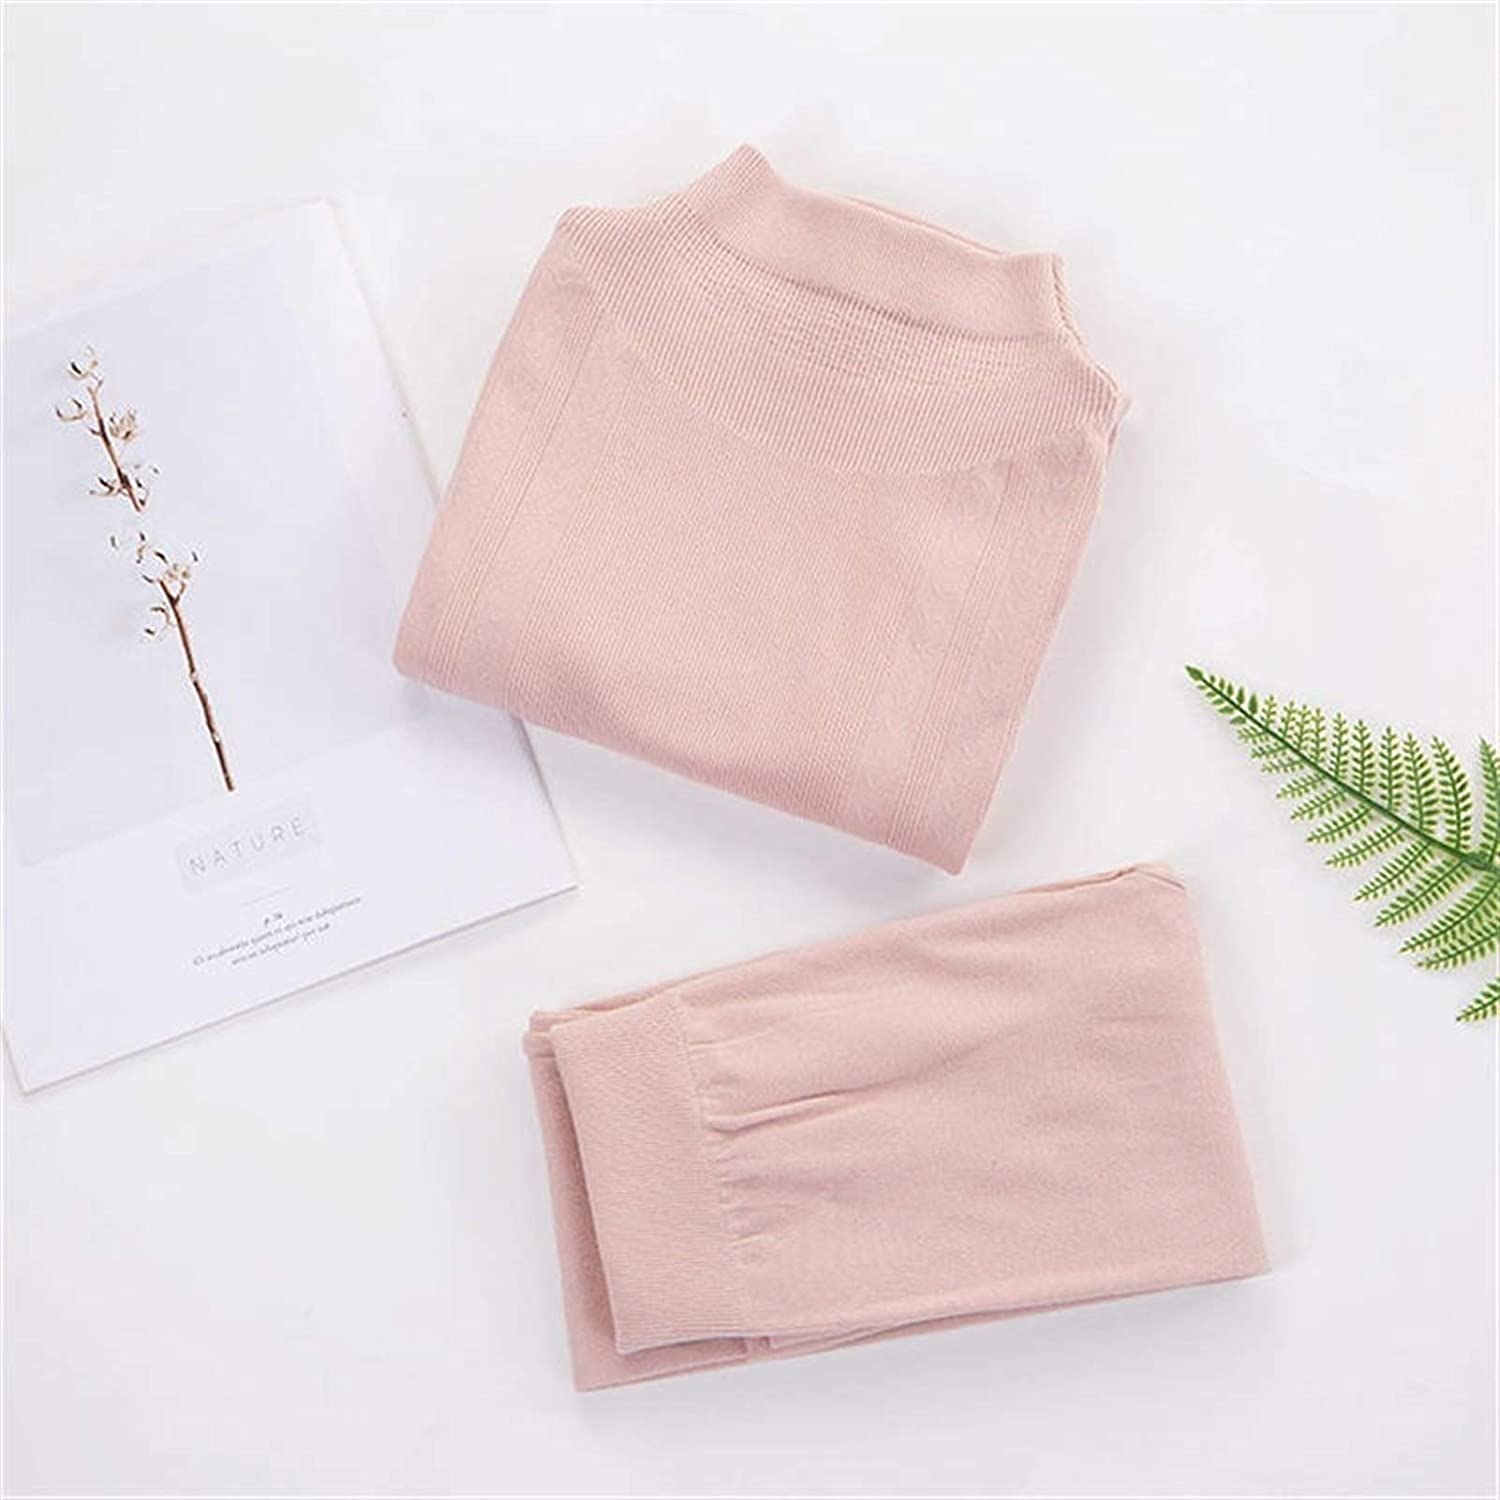 DZHT Warm Thermal Underwear Sexy Ladies Women Shaped Sets Female Middle Collar Thermal Shaping Clothes (Color : Light Pink, Size : 40 65KG)